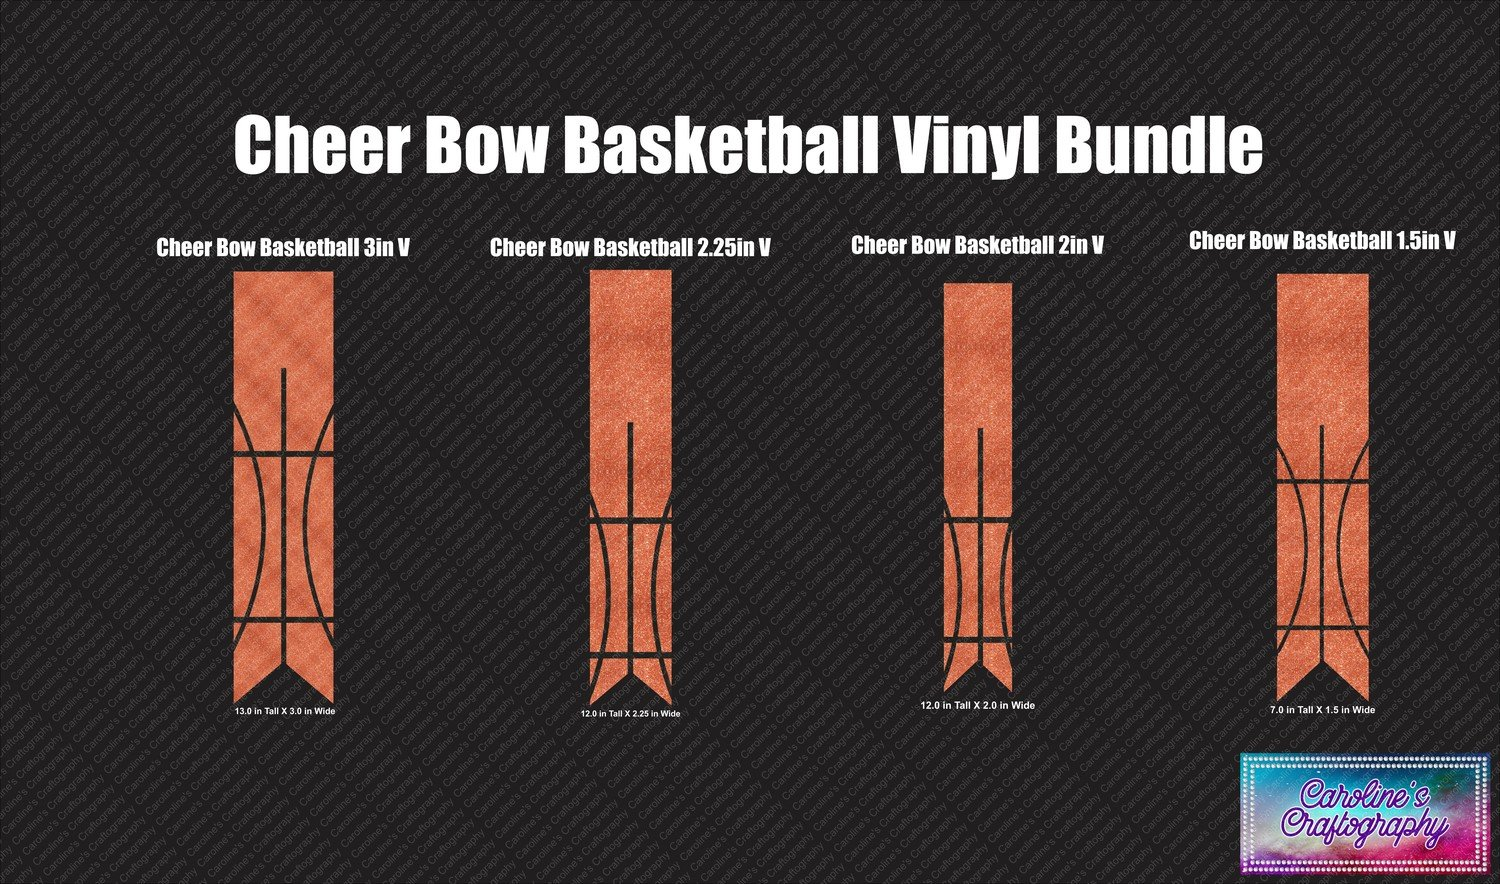 Cheer Bow Basketball Vinyl Bundle